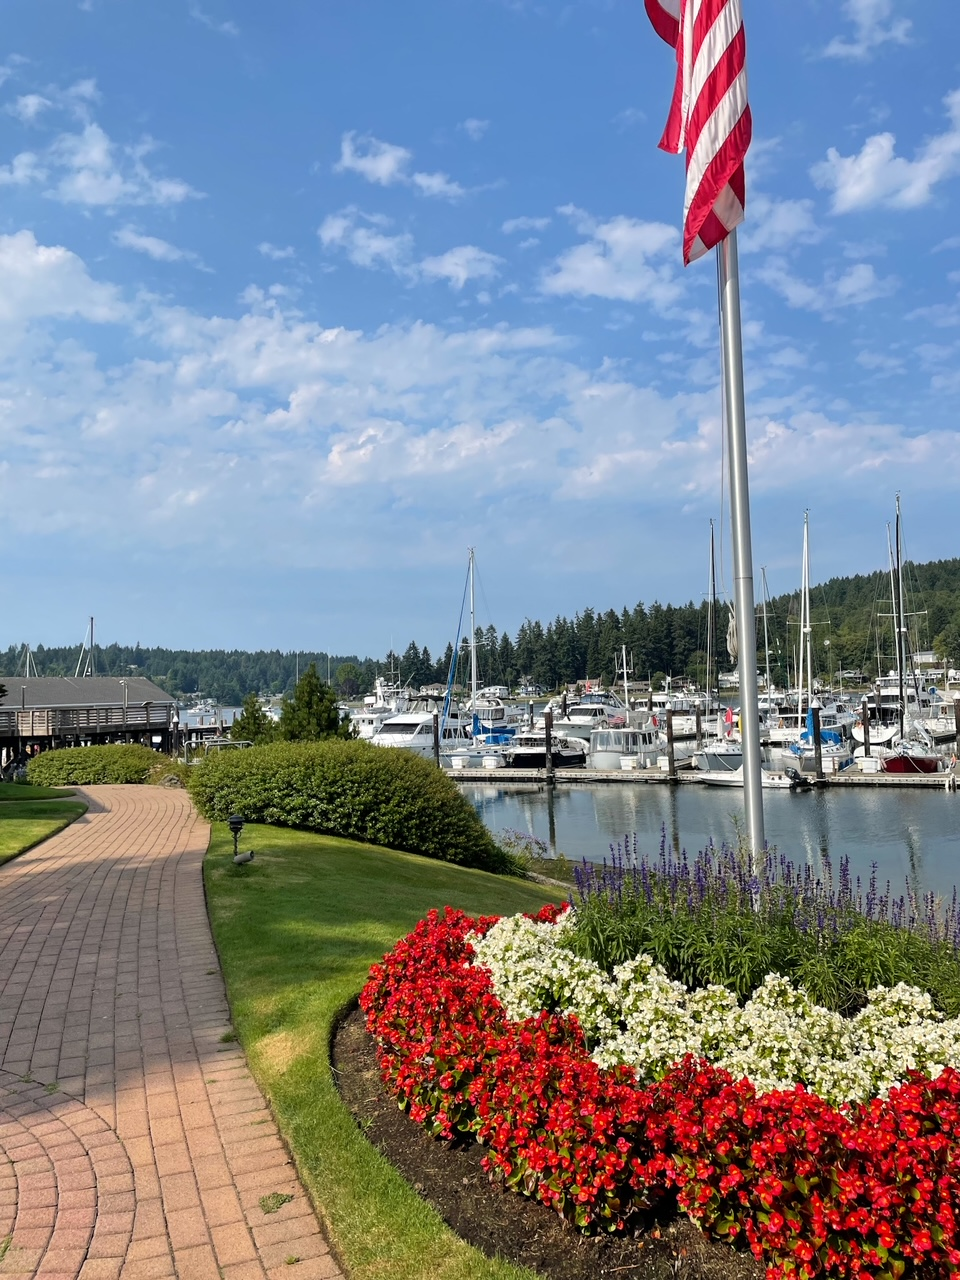 A photo of Gig Harbour, a waterfront sidewalk with landscaped flowers and boats